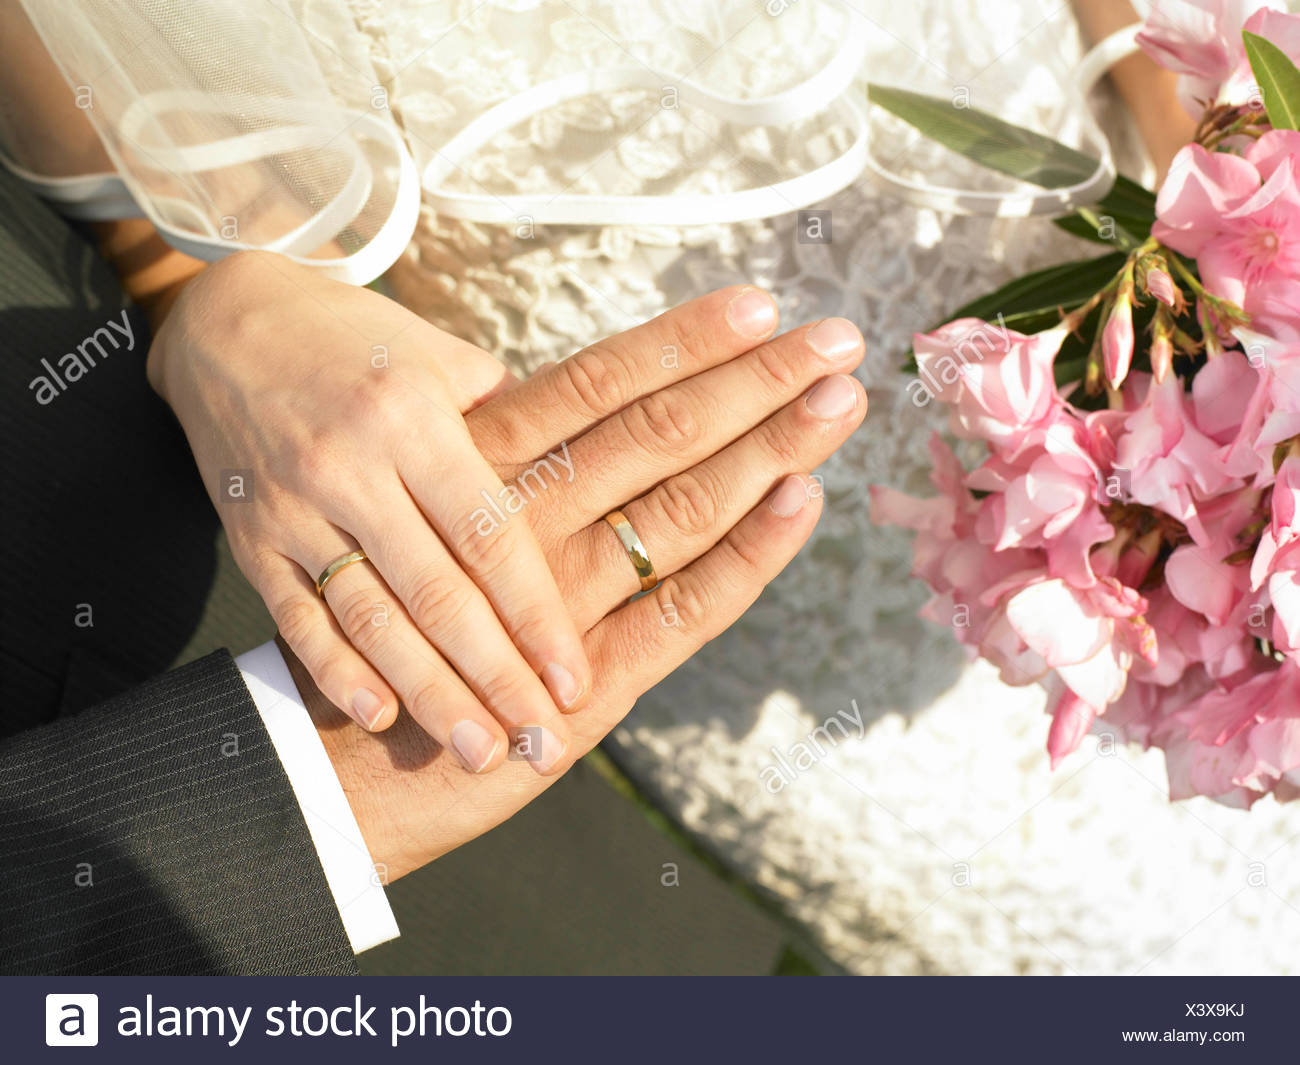 Bride and groom hands with wedding rings - Stock Photo